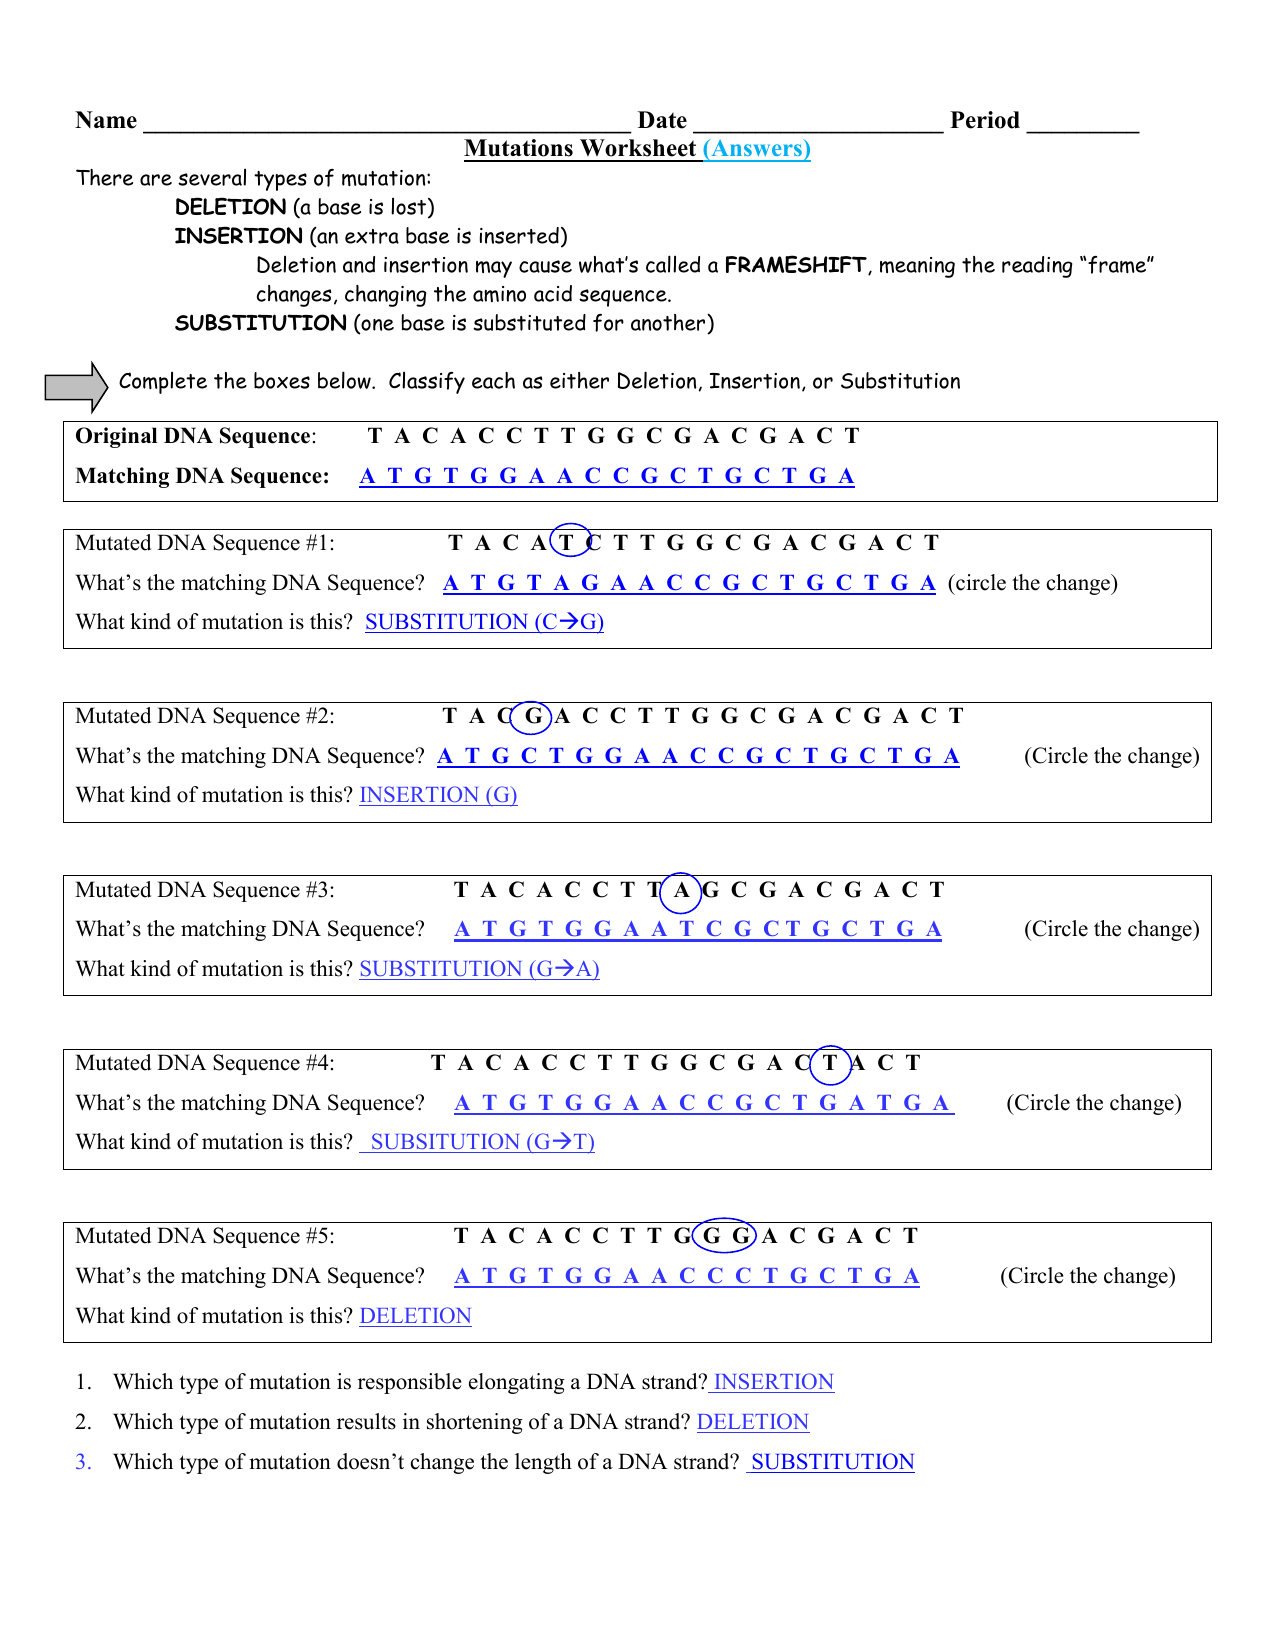 Mutations Worksheet Answers Excelguider